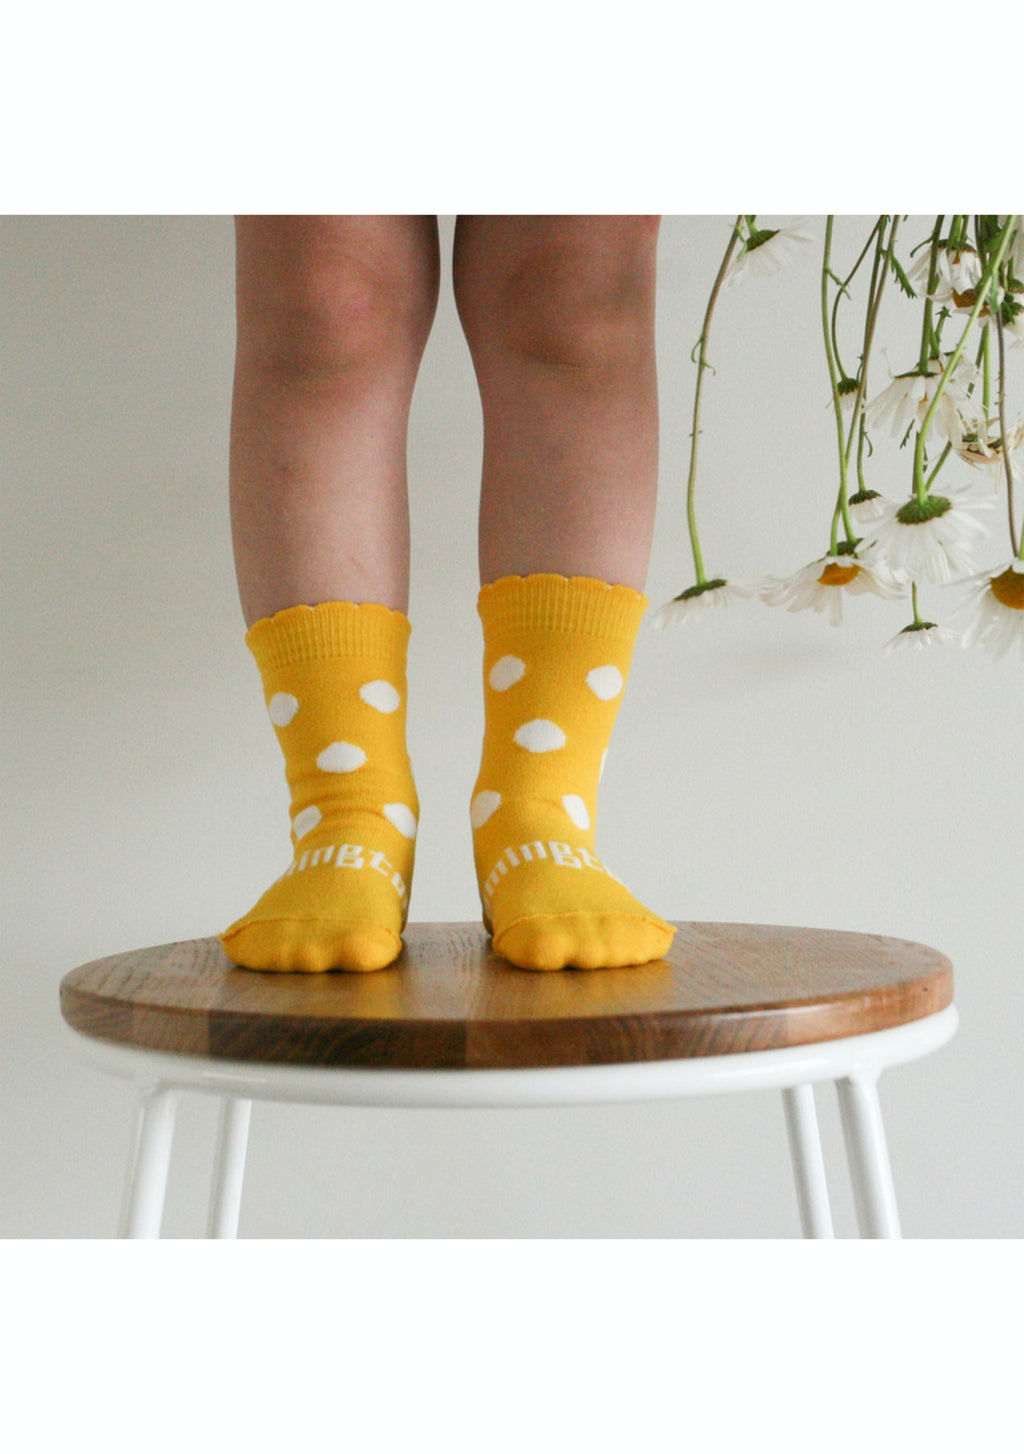 Lamington - Merino Wool Crew Socks - Dalphne